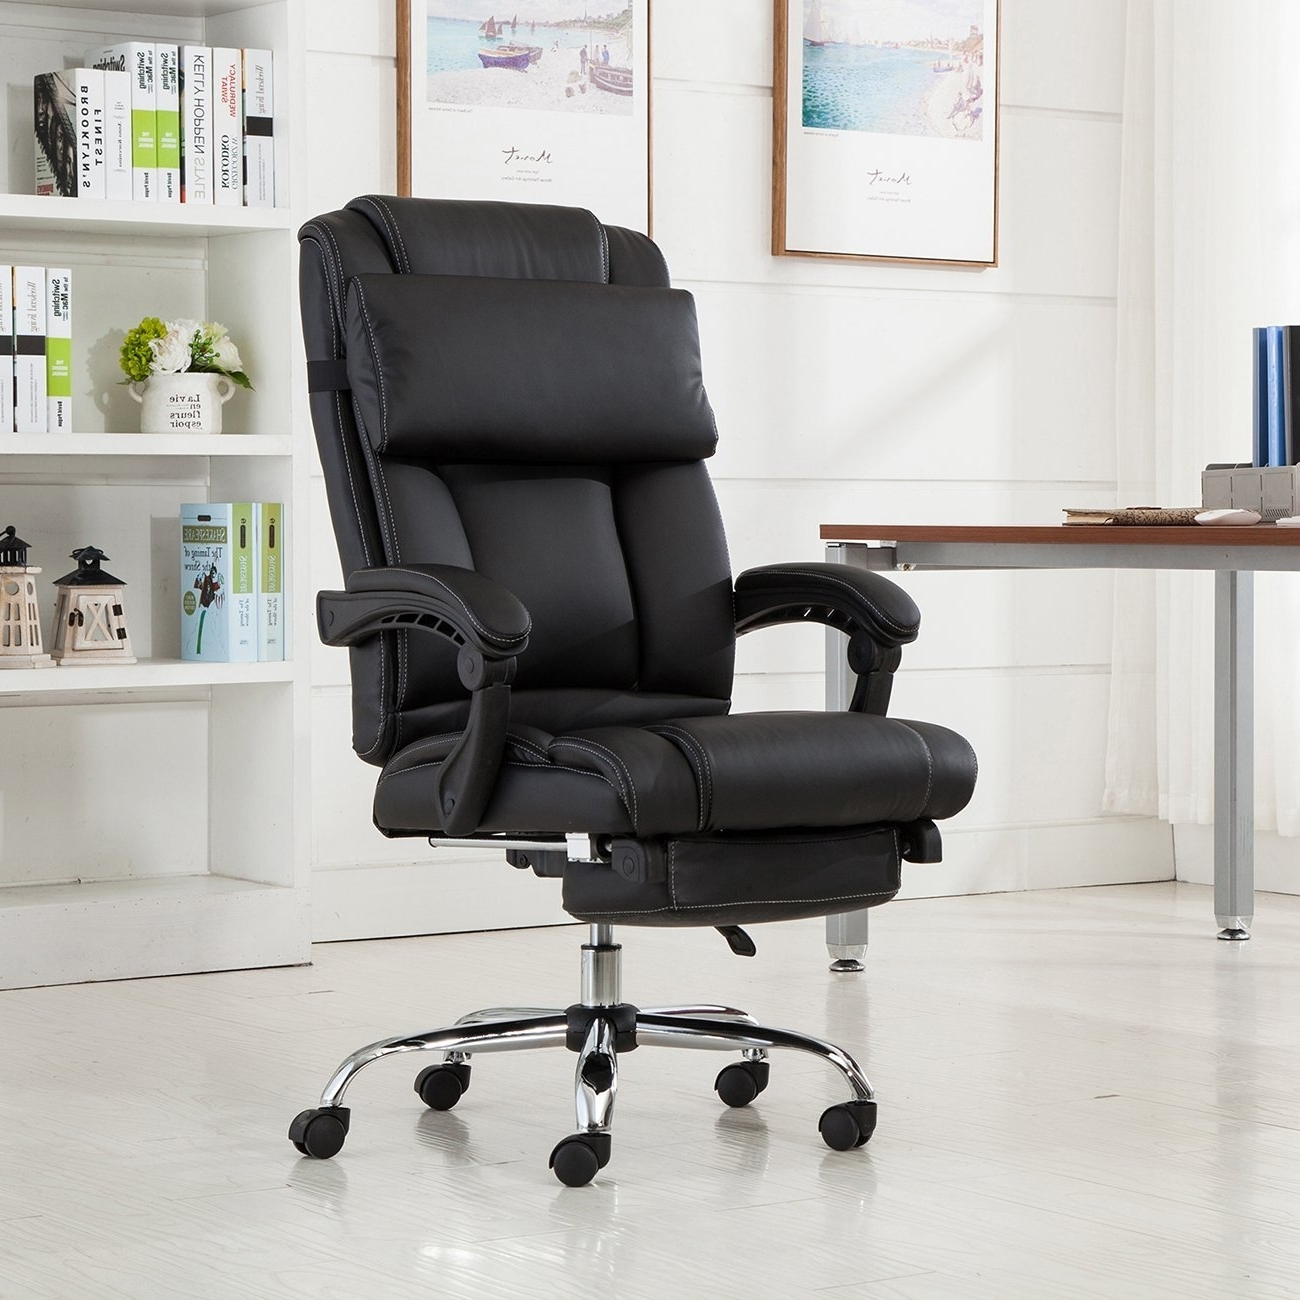 Updated Guide For 2018 With Leather Swivel Recliner Executive Office Chairs (View 17 of 20)